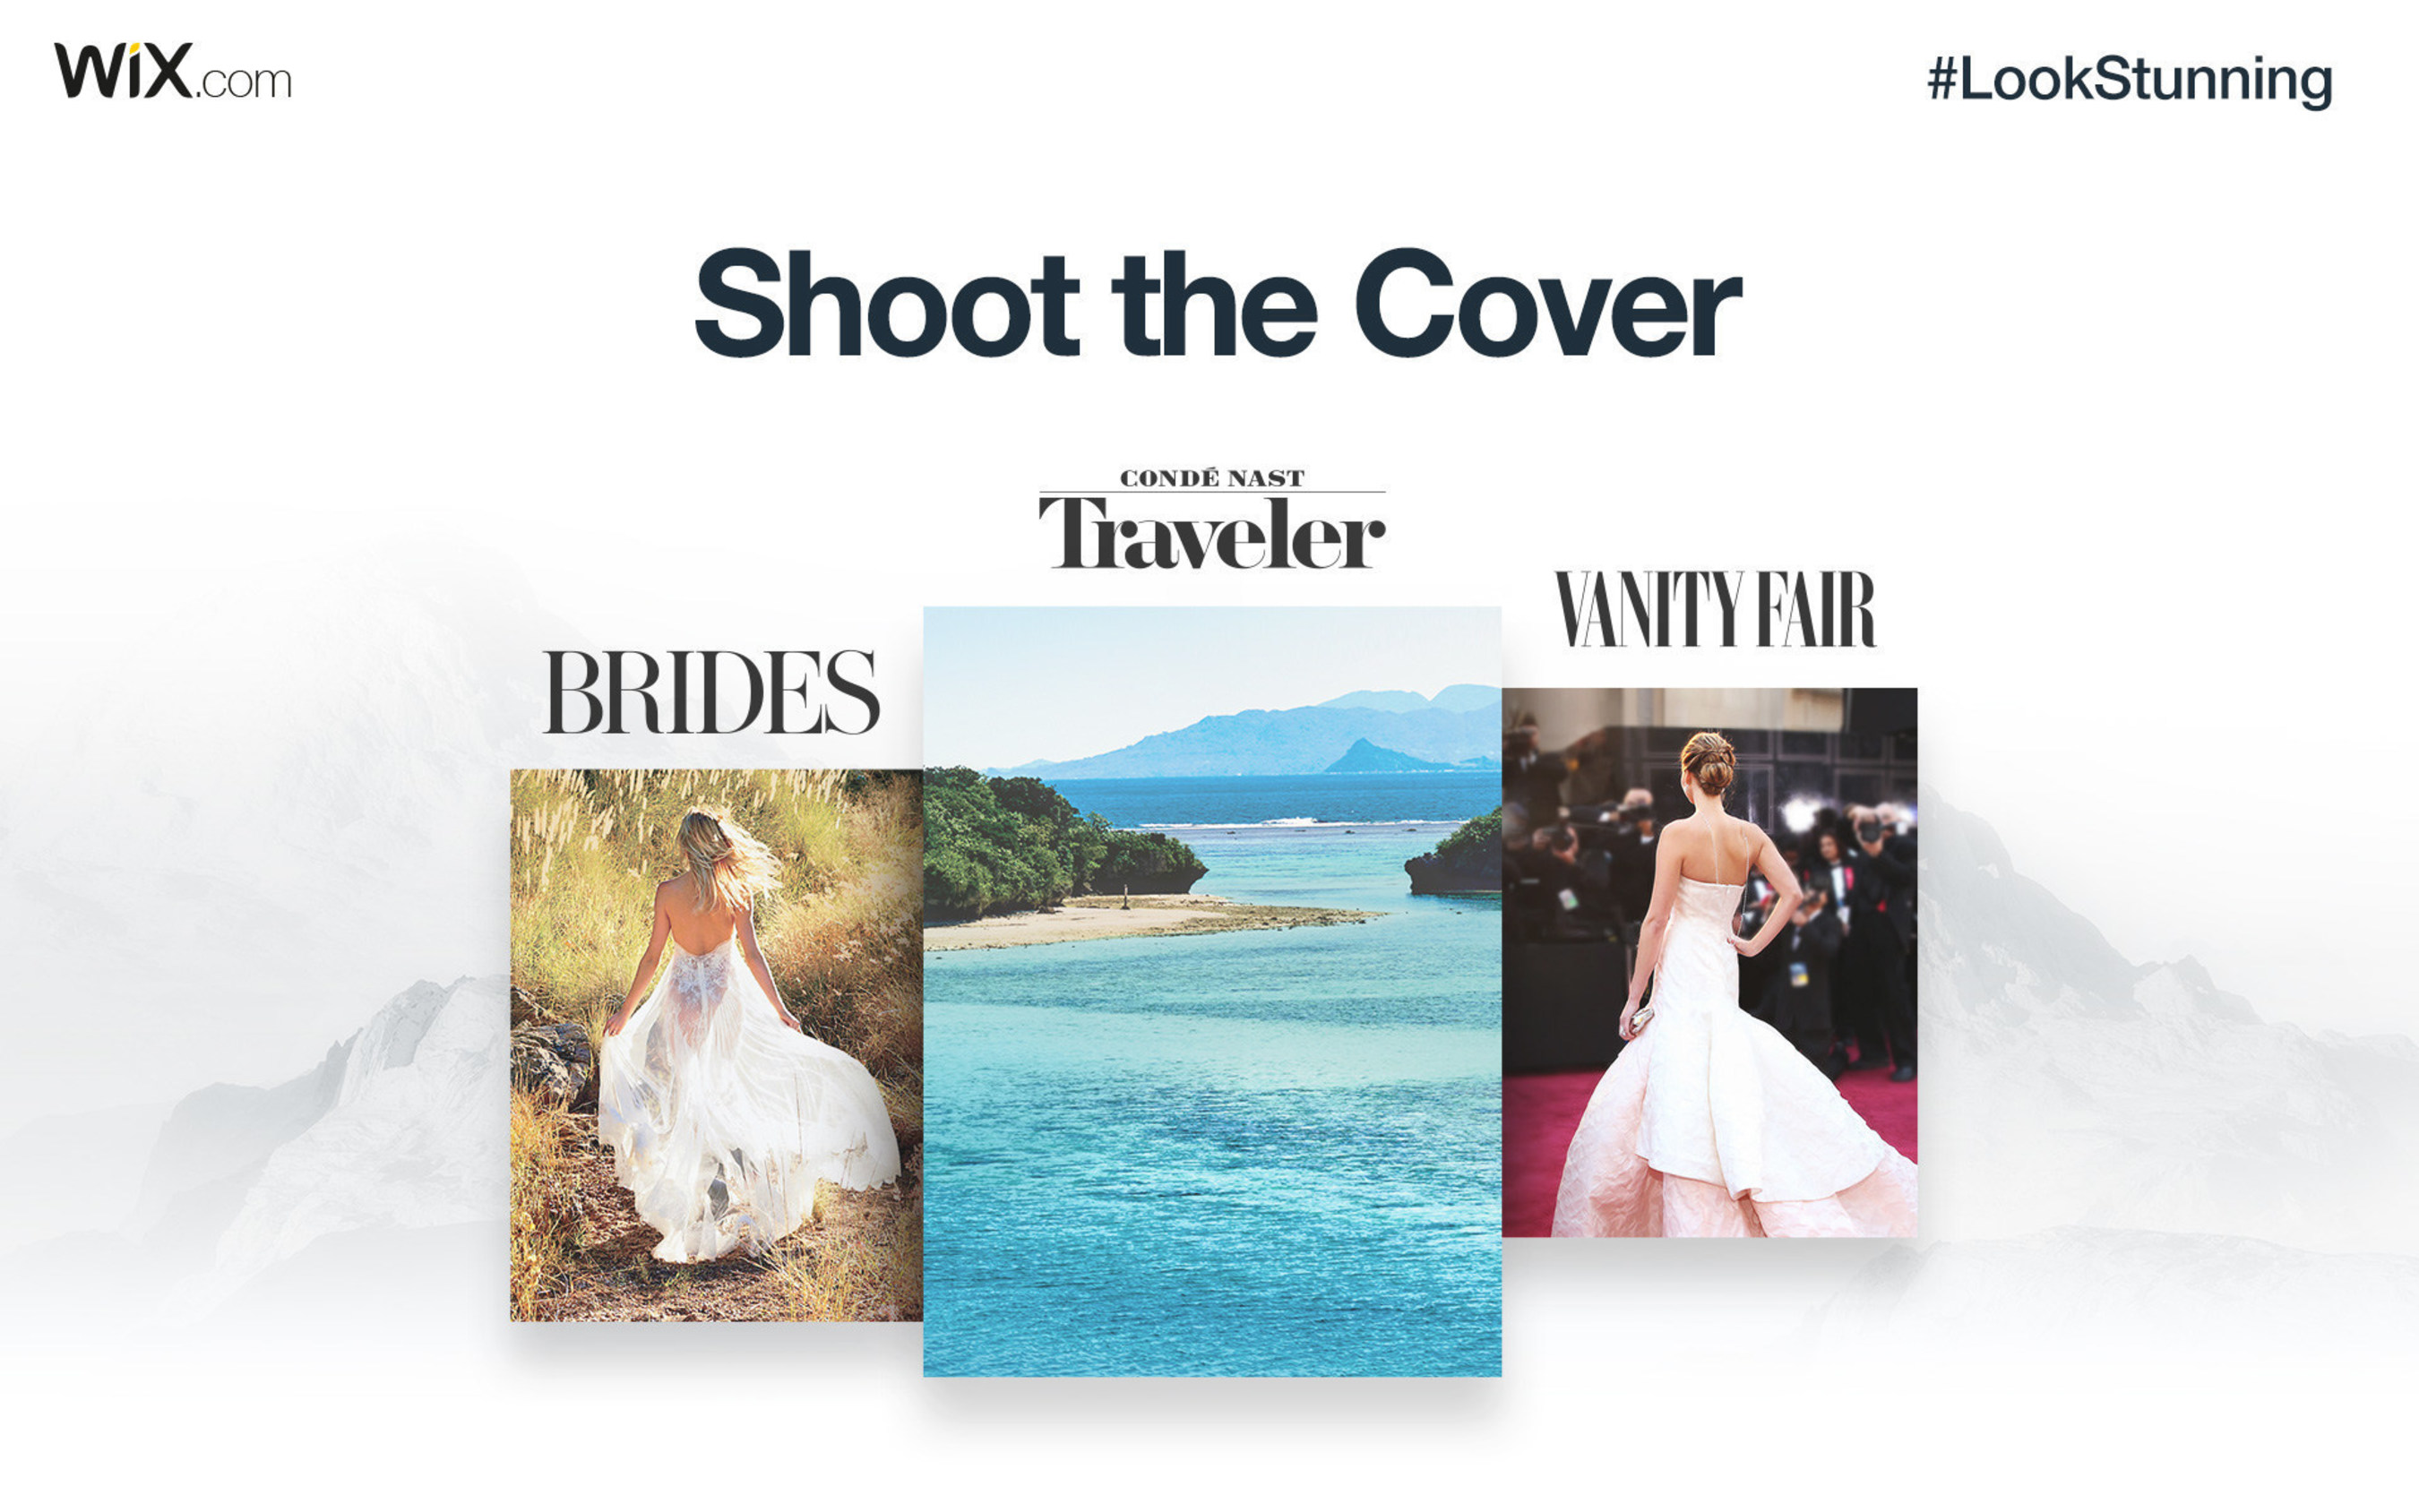 Shoot the Cover